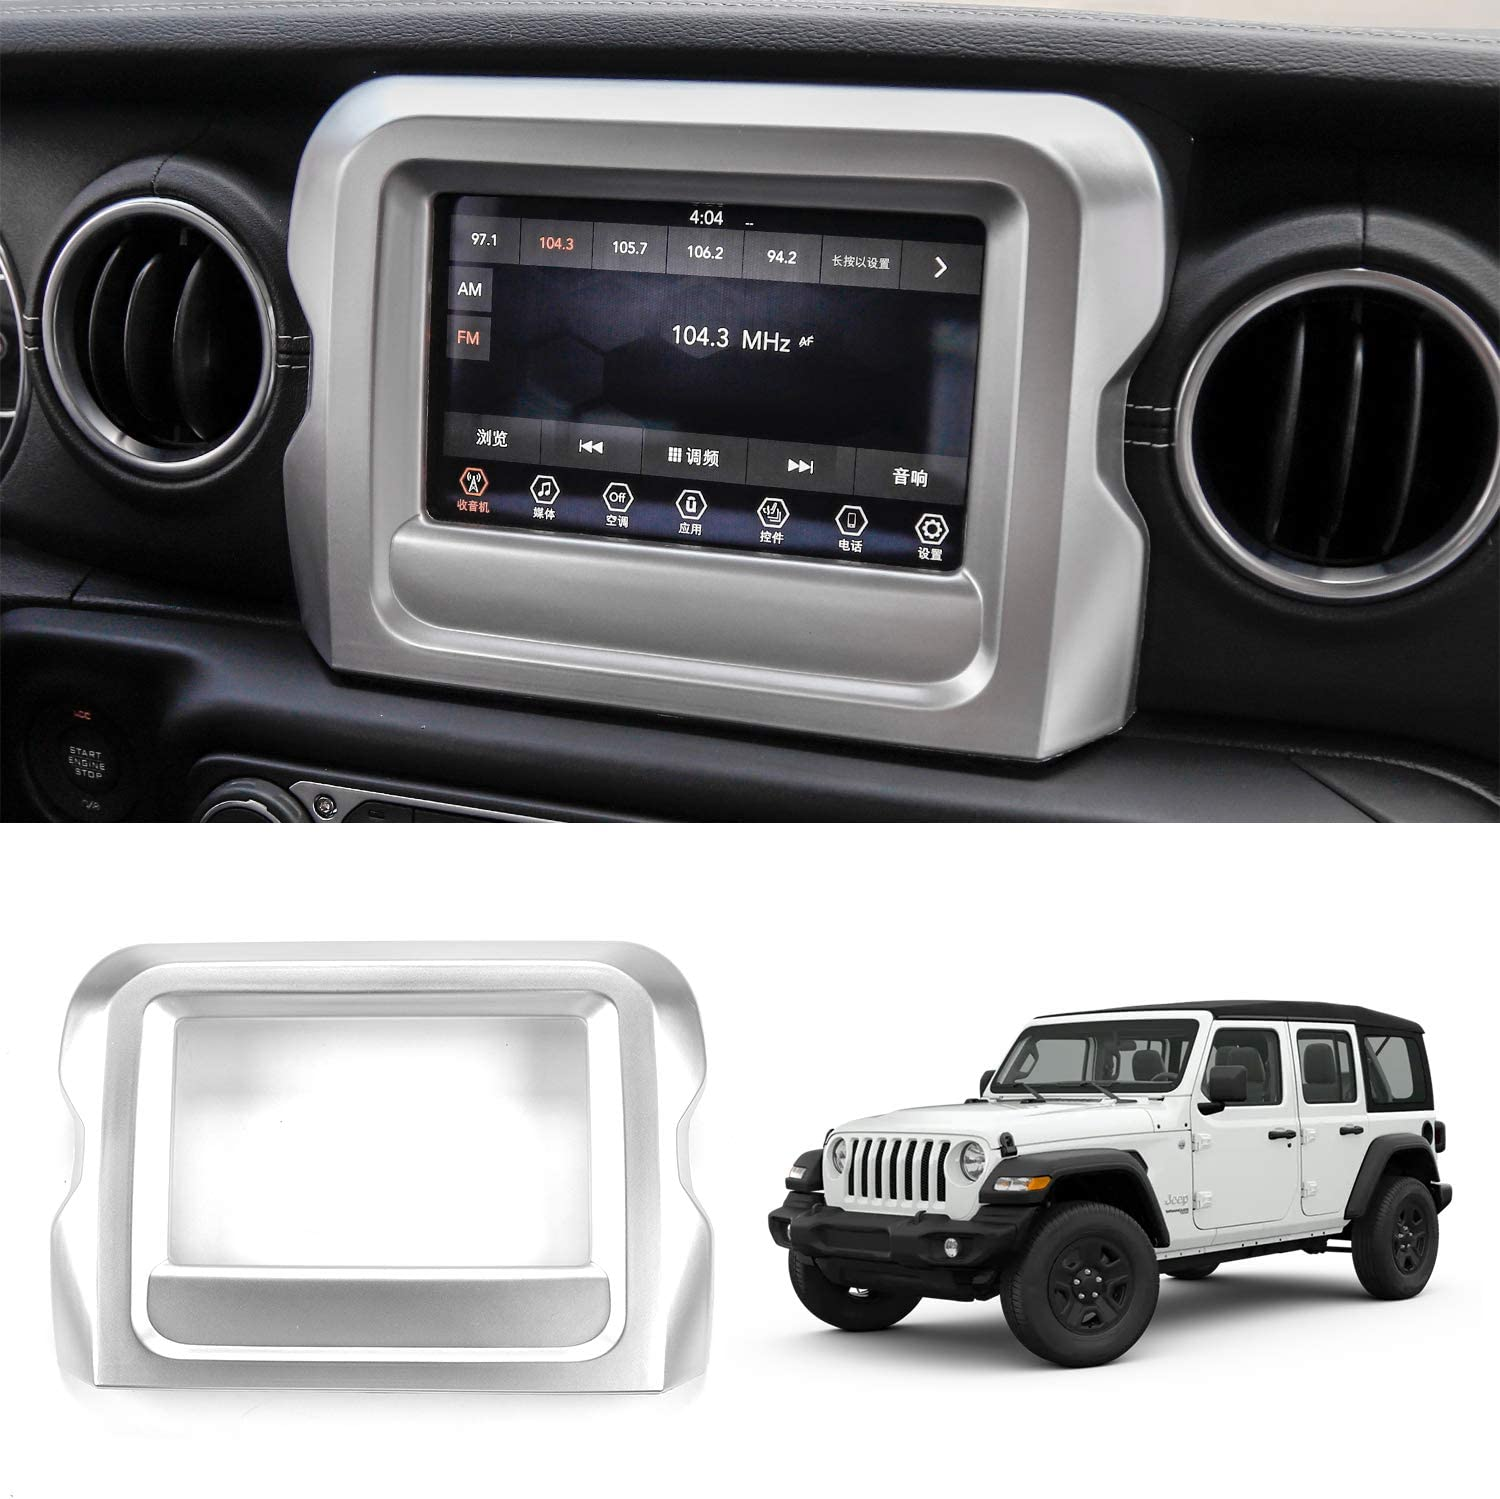 RT-TCZ GPS Navigation Panel Frame Trim Cover Decoration 7 inch Car Accessories Carbon Fiber ABS for Jeep Wrangler JL 2018 2019 2020 Rubicon Silver